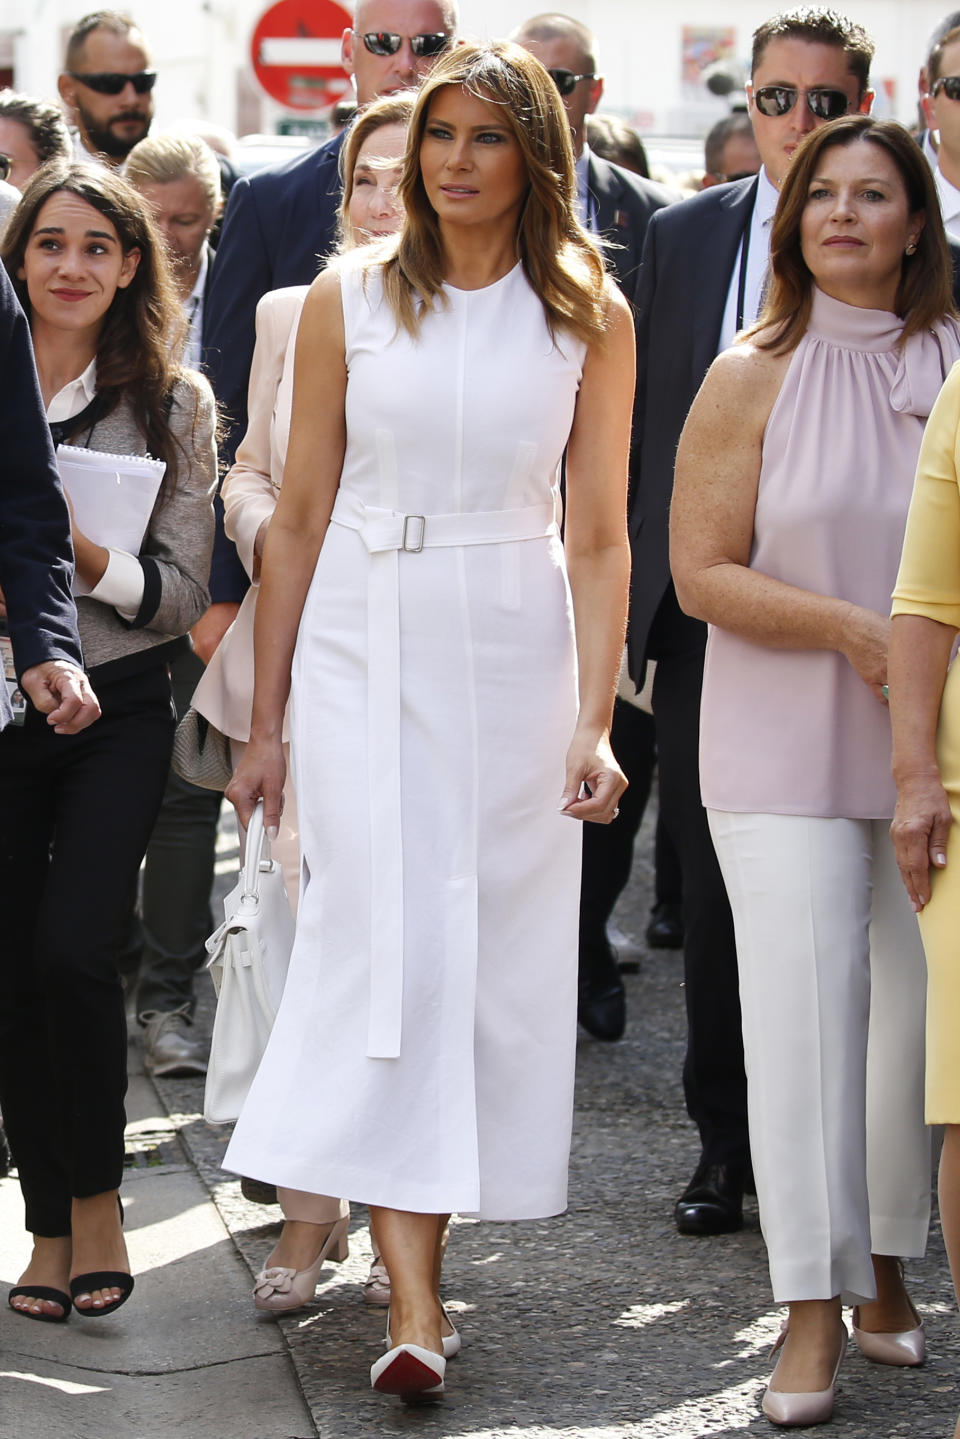 Melania Trump joins G7 World leaders' spouses near Biarritz as part of the G7 summit on August 25, 2019. [Photo: Getty]